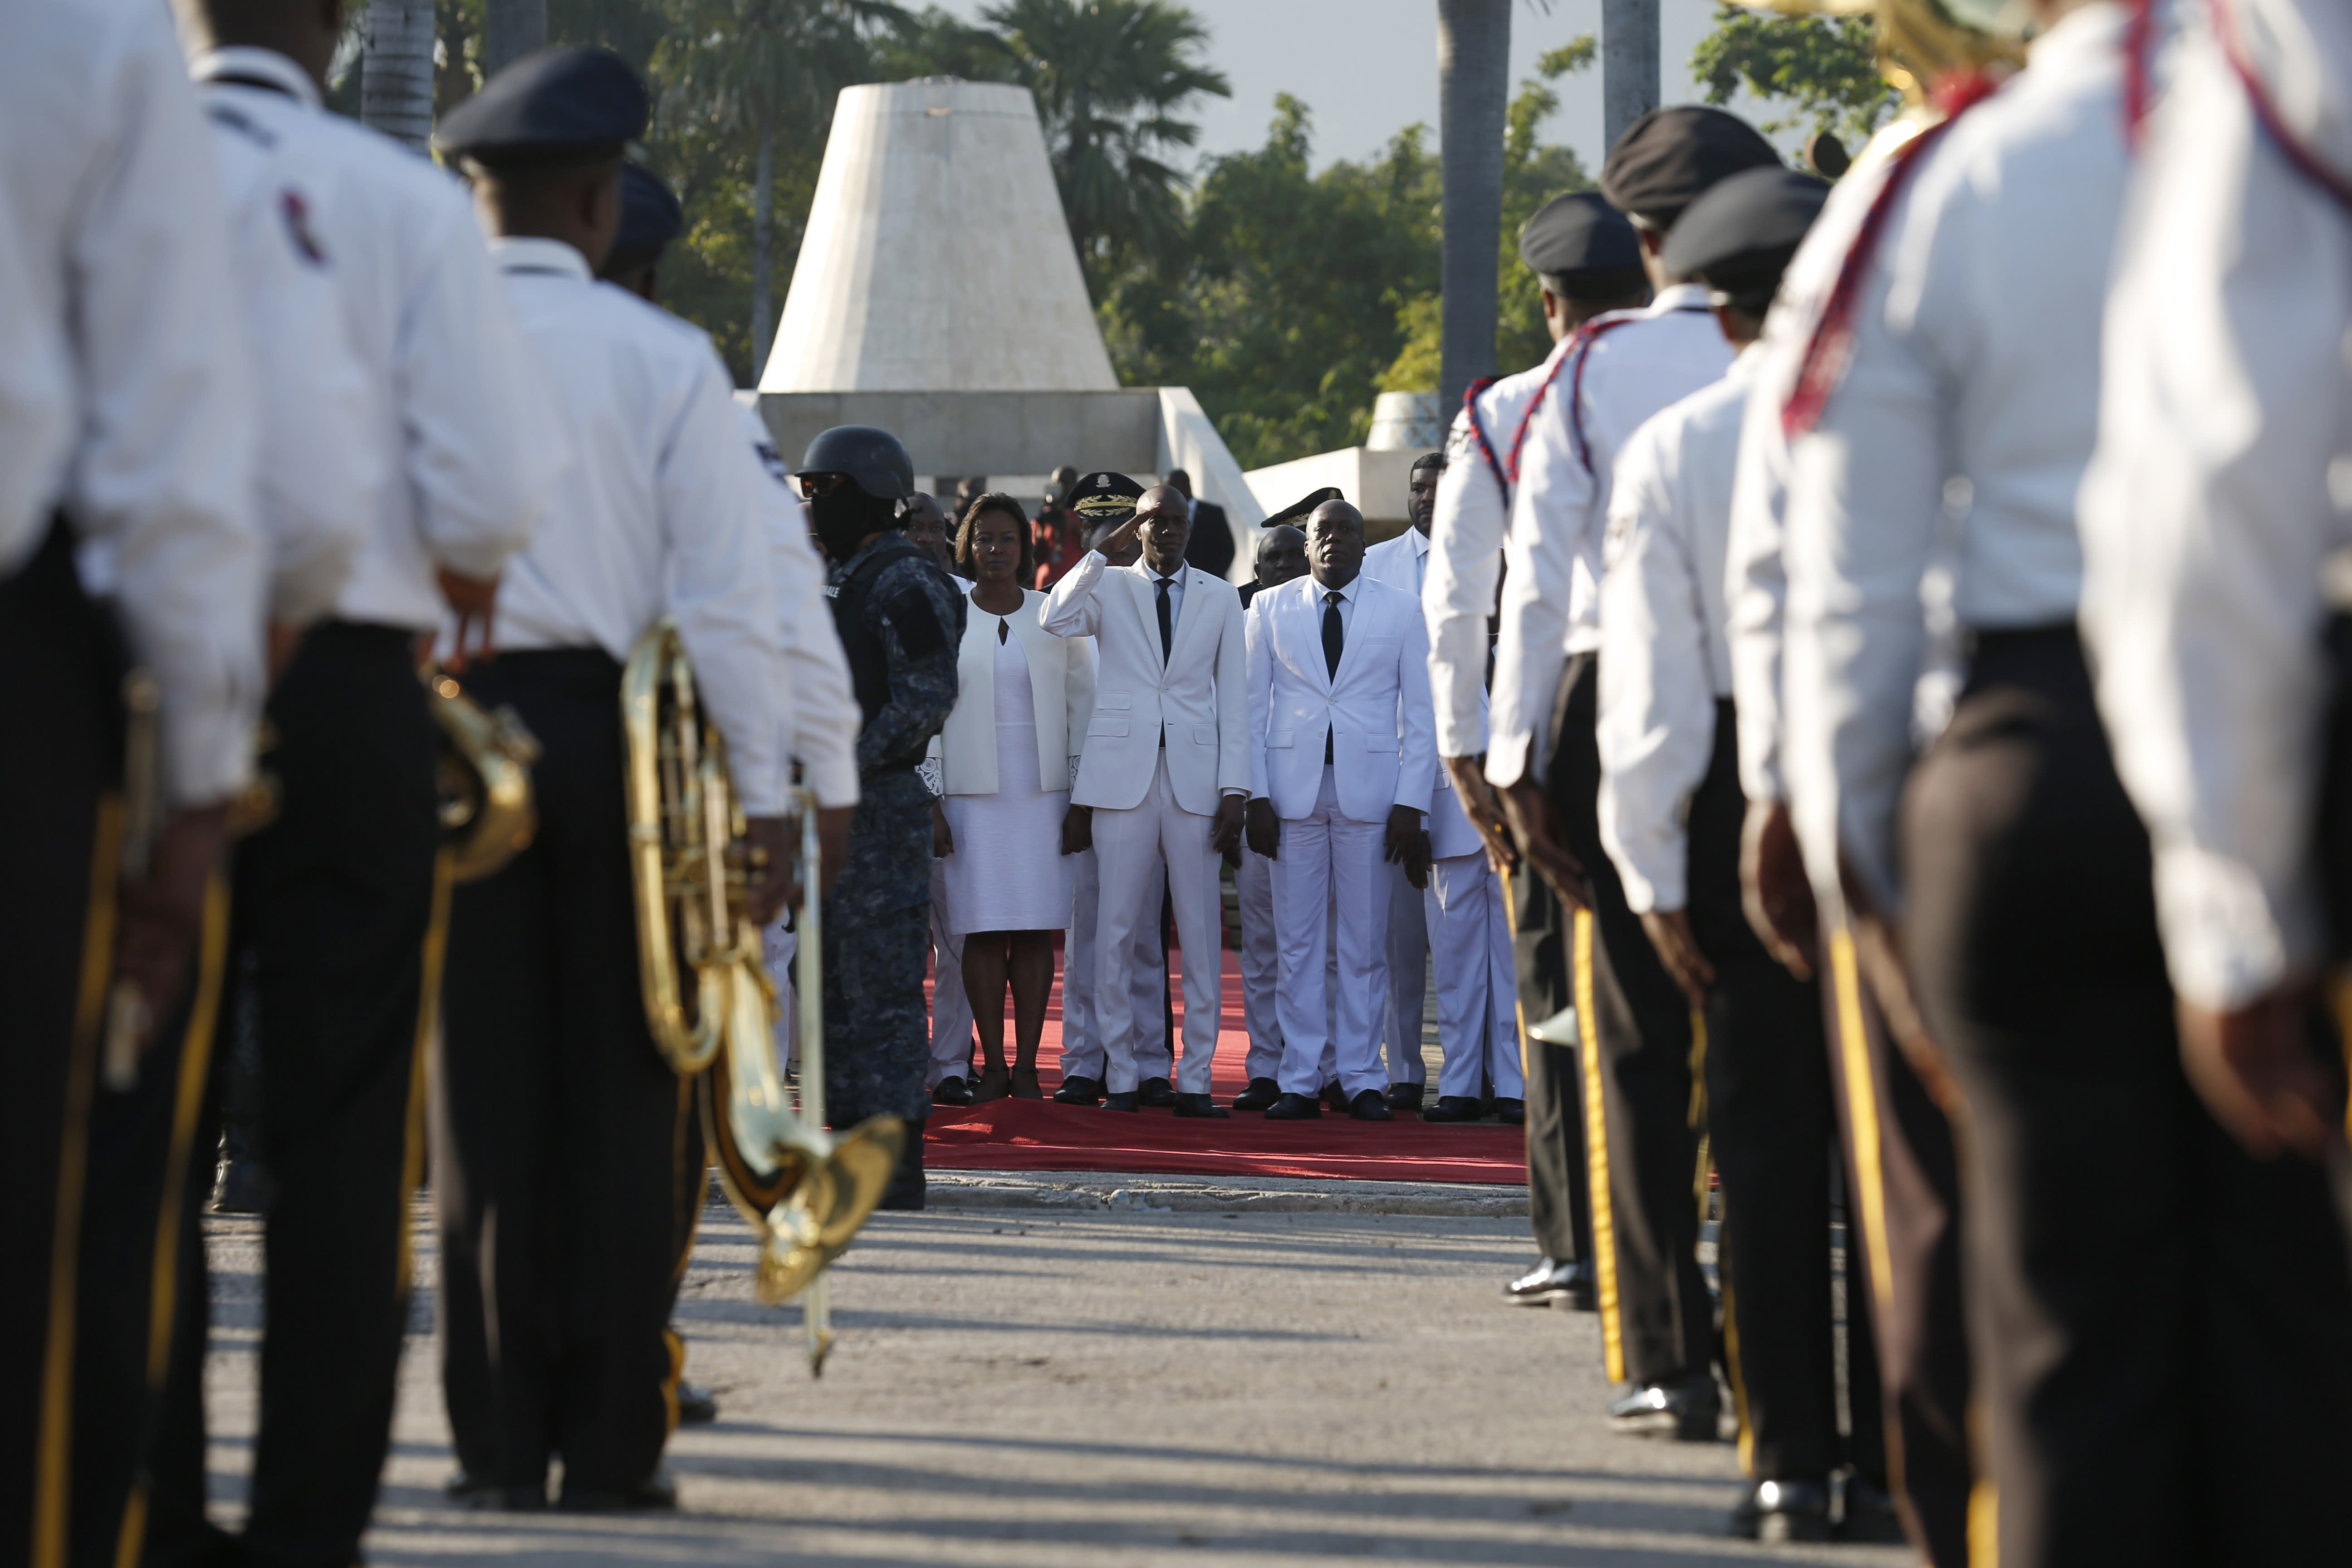 Accompanied by First Lady Martine Moise, center left, President Jovenel Moise salutes a police marching band before laying flowers to mark the anniversary of the death of Haitian revolution leader Jean Jacques Dessalines, at Champ de Mars, adjacent to the National Palace, in Port-au-Prince, Haiti, Thursday Oct. 17, 2019. President Moise has been facing ever more violent protests demanding his resignation fueled by anger over corruption, inflation and dwindling of basic supplies, including gasoline. (AP Photo/Rebecca Blackwell)